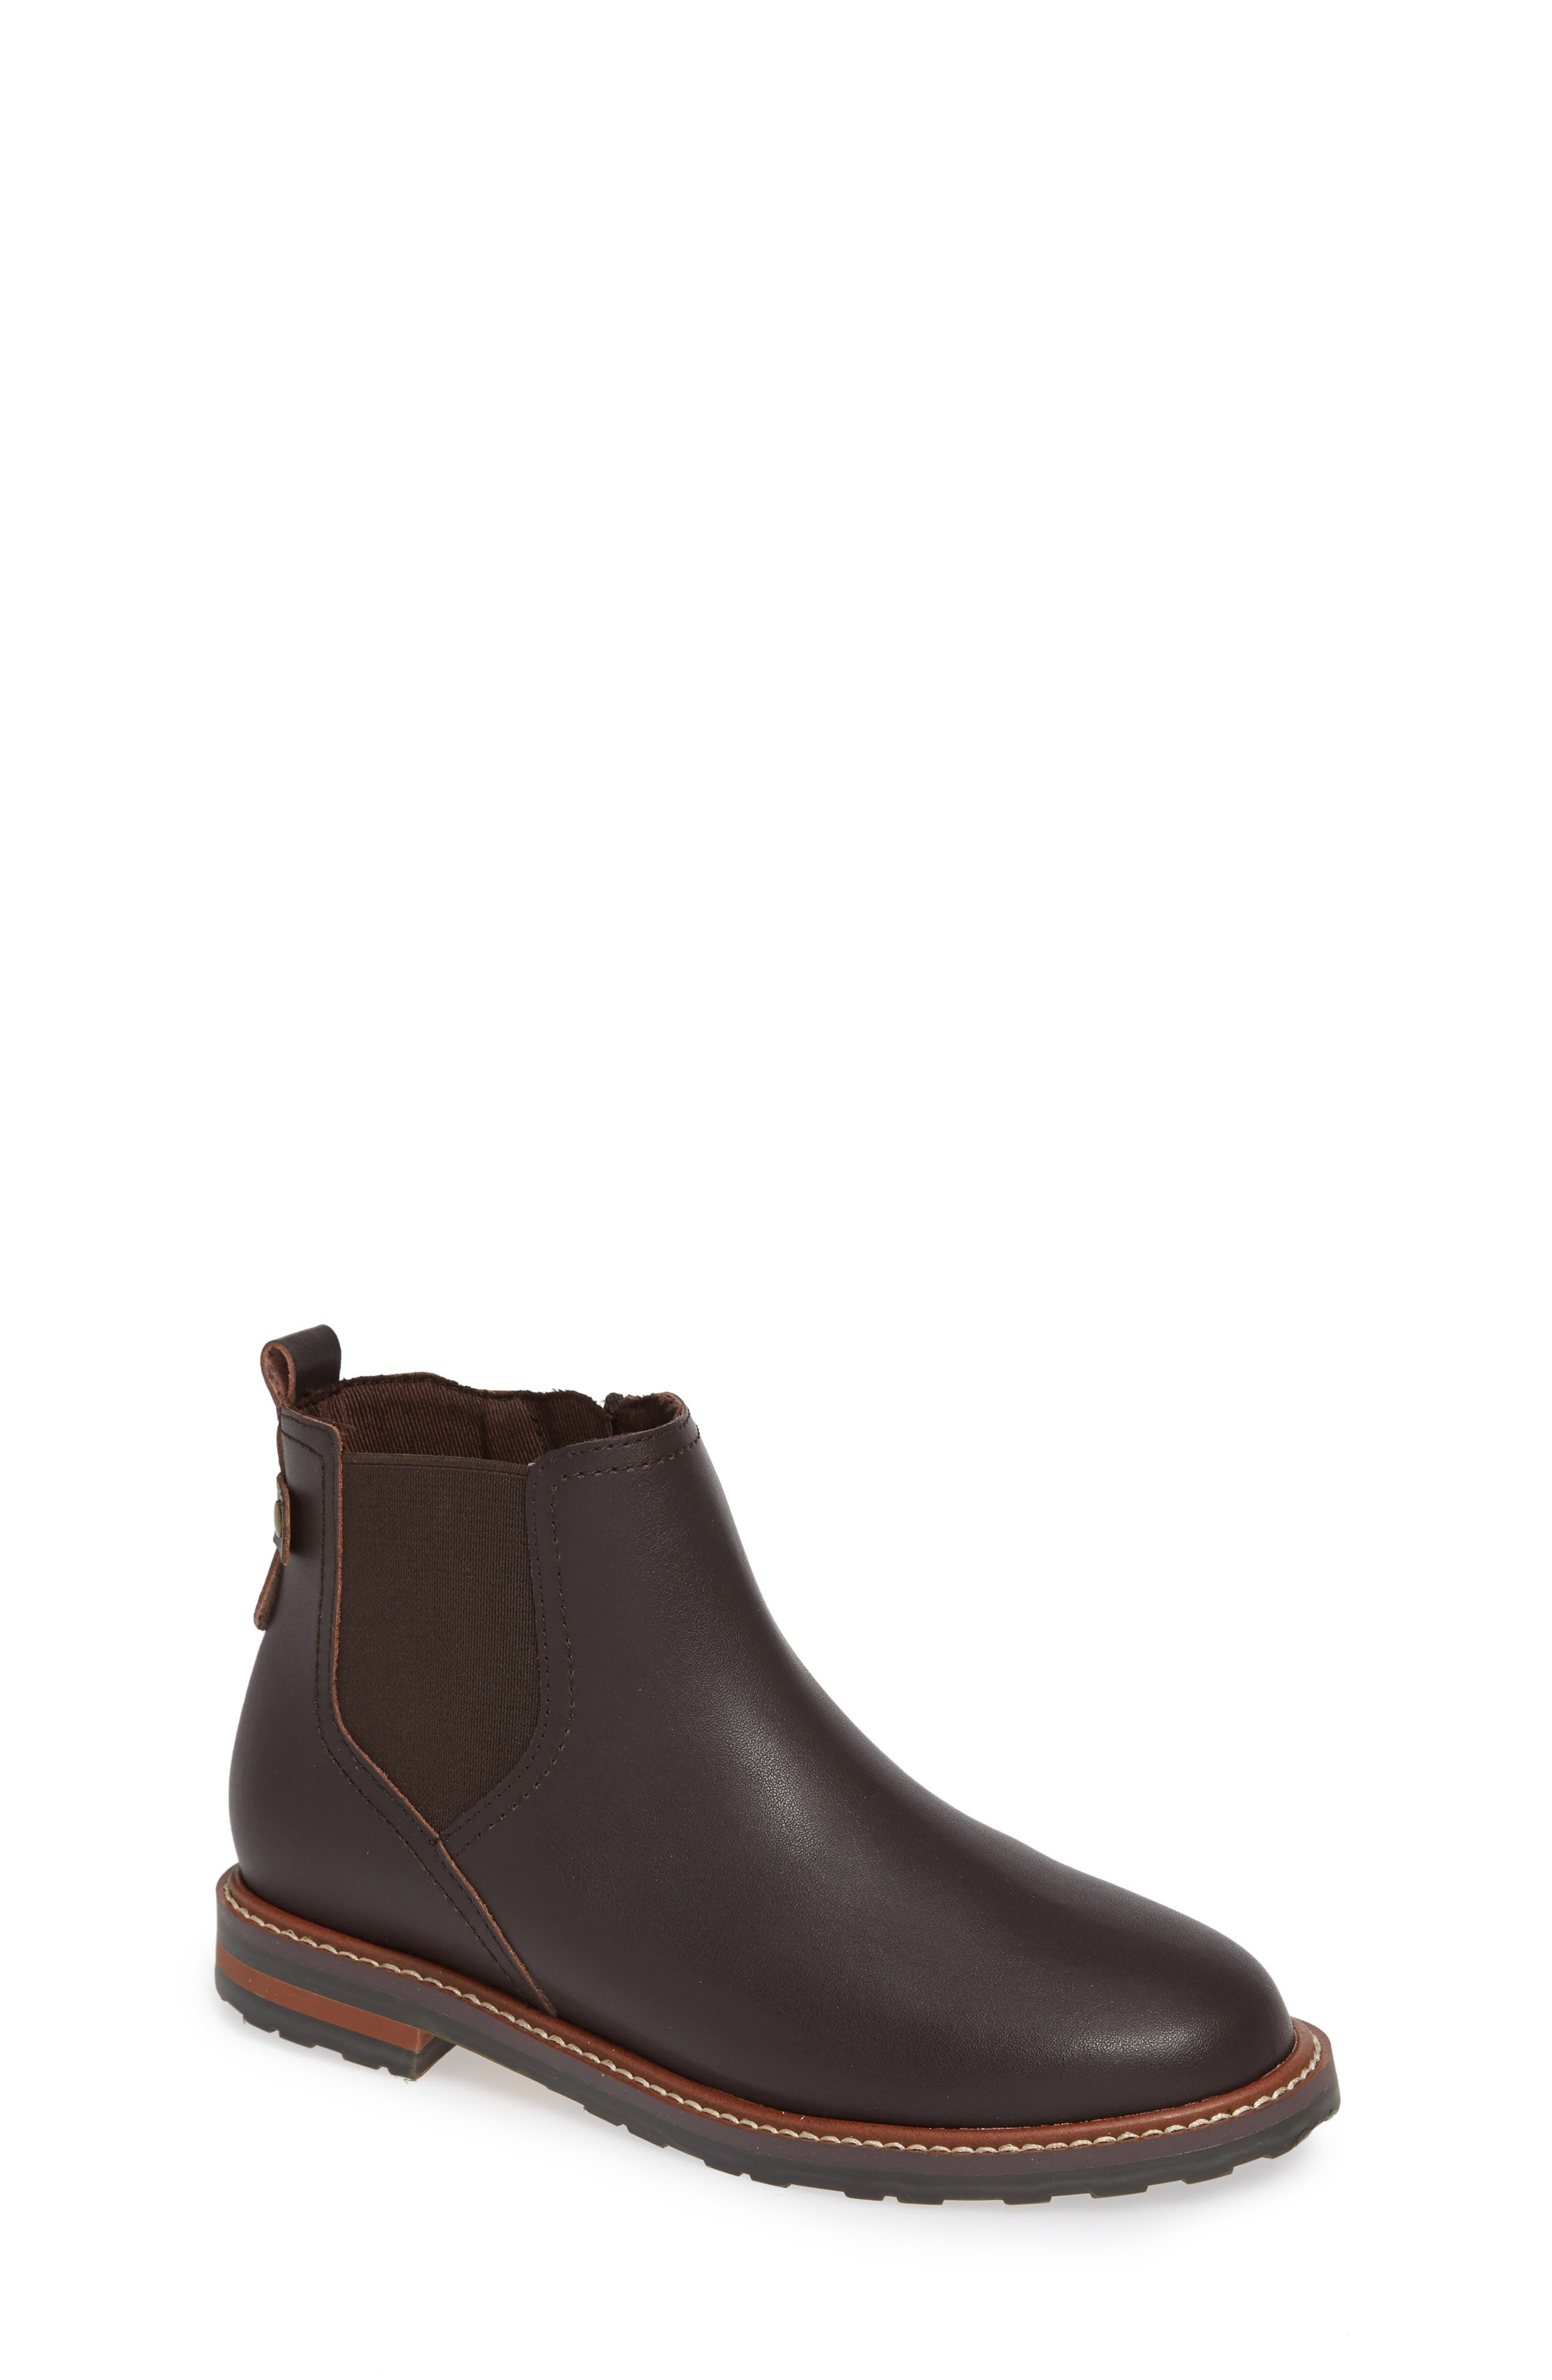 Chelsea Boot,                         Main,                         color, CHOCOLATE OILED LEATHER